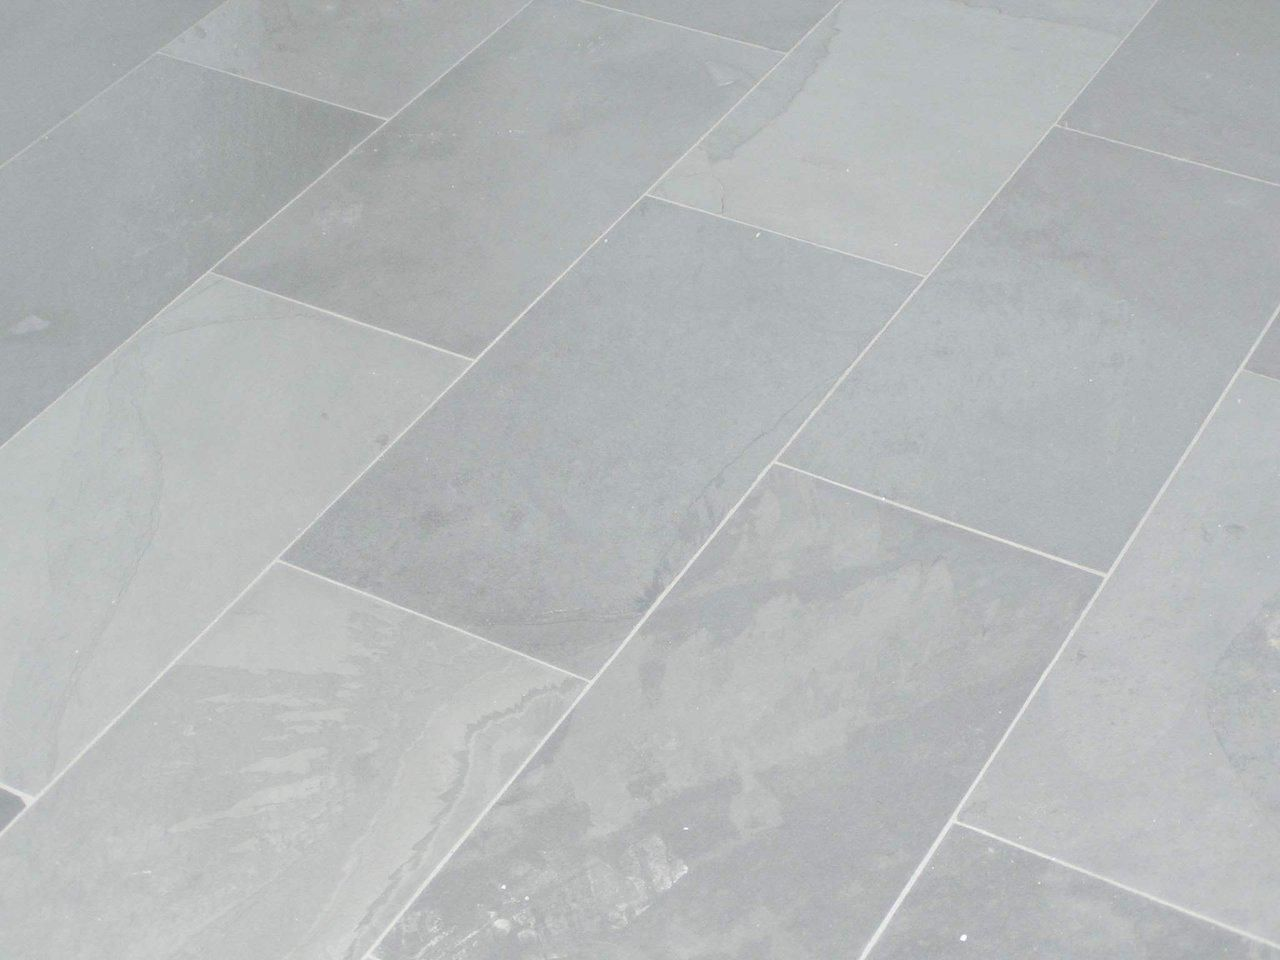 Wix slate flooring ideas and master bathrooms grey slate google search slate tilesflooring dailygadgetfo Choice Image